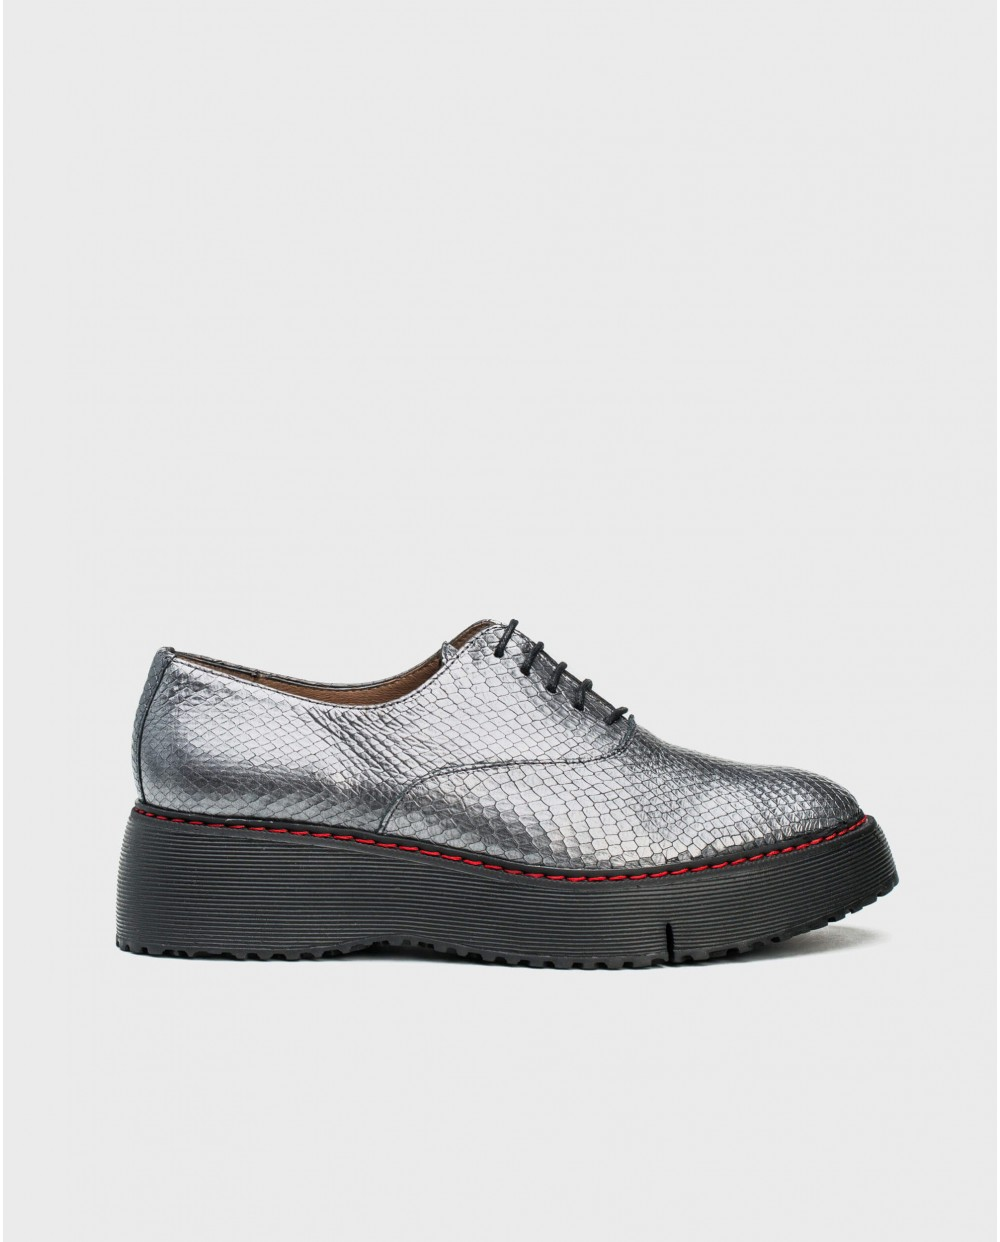 Wonders-Flat Shoes-leather snake print sneaker with wedge